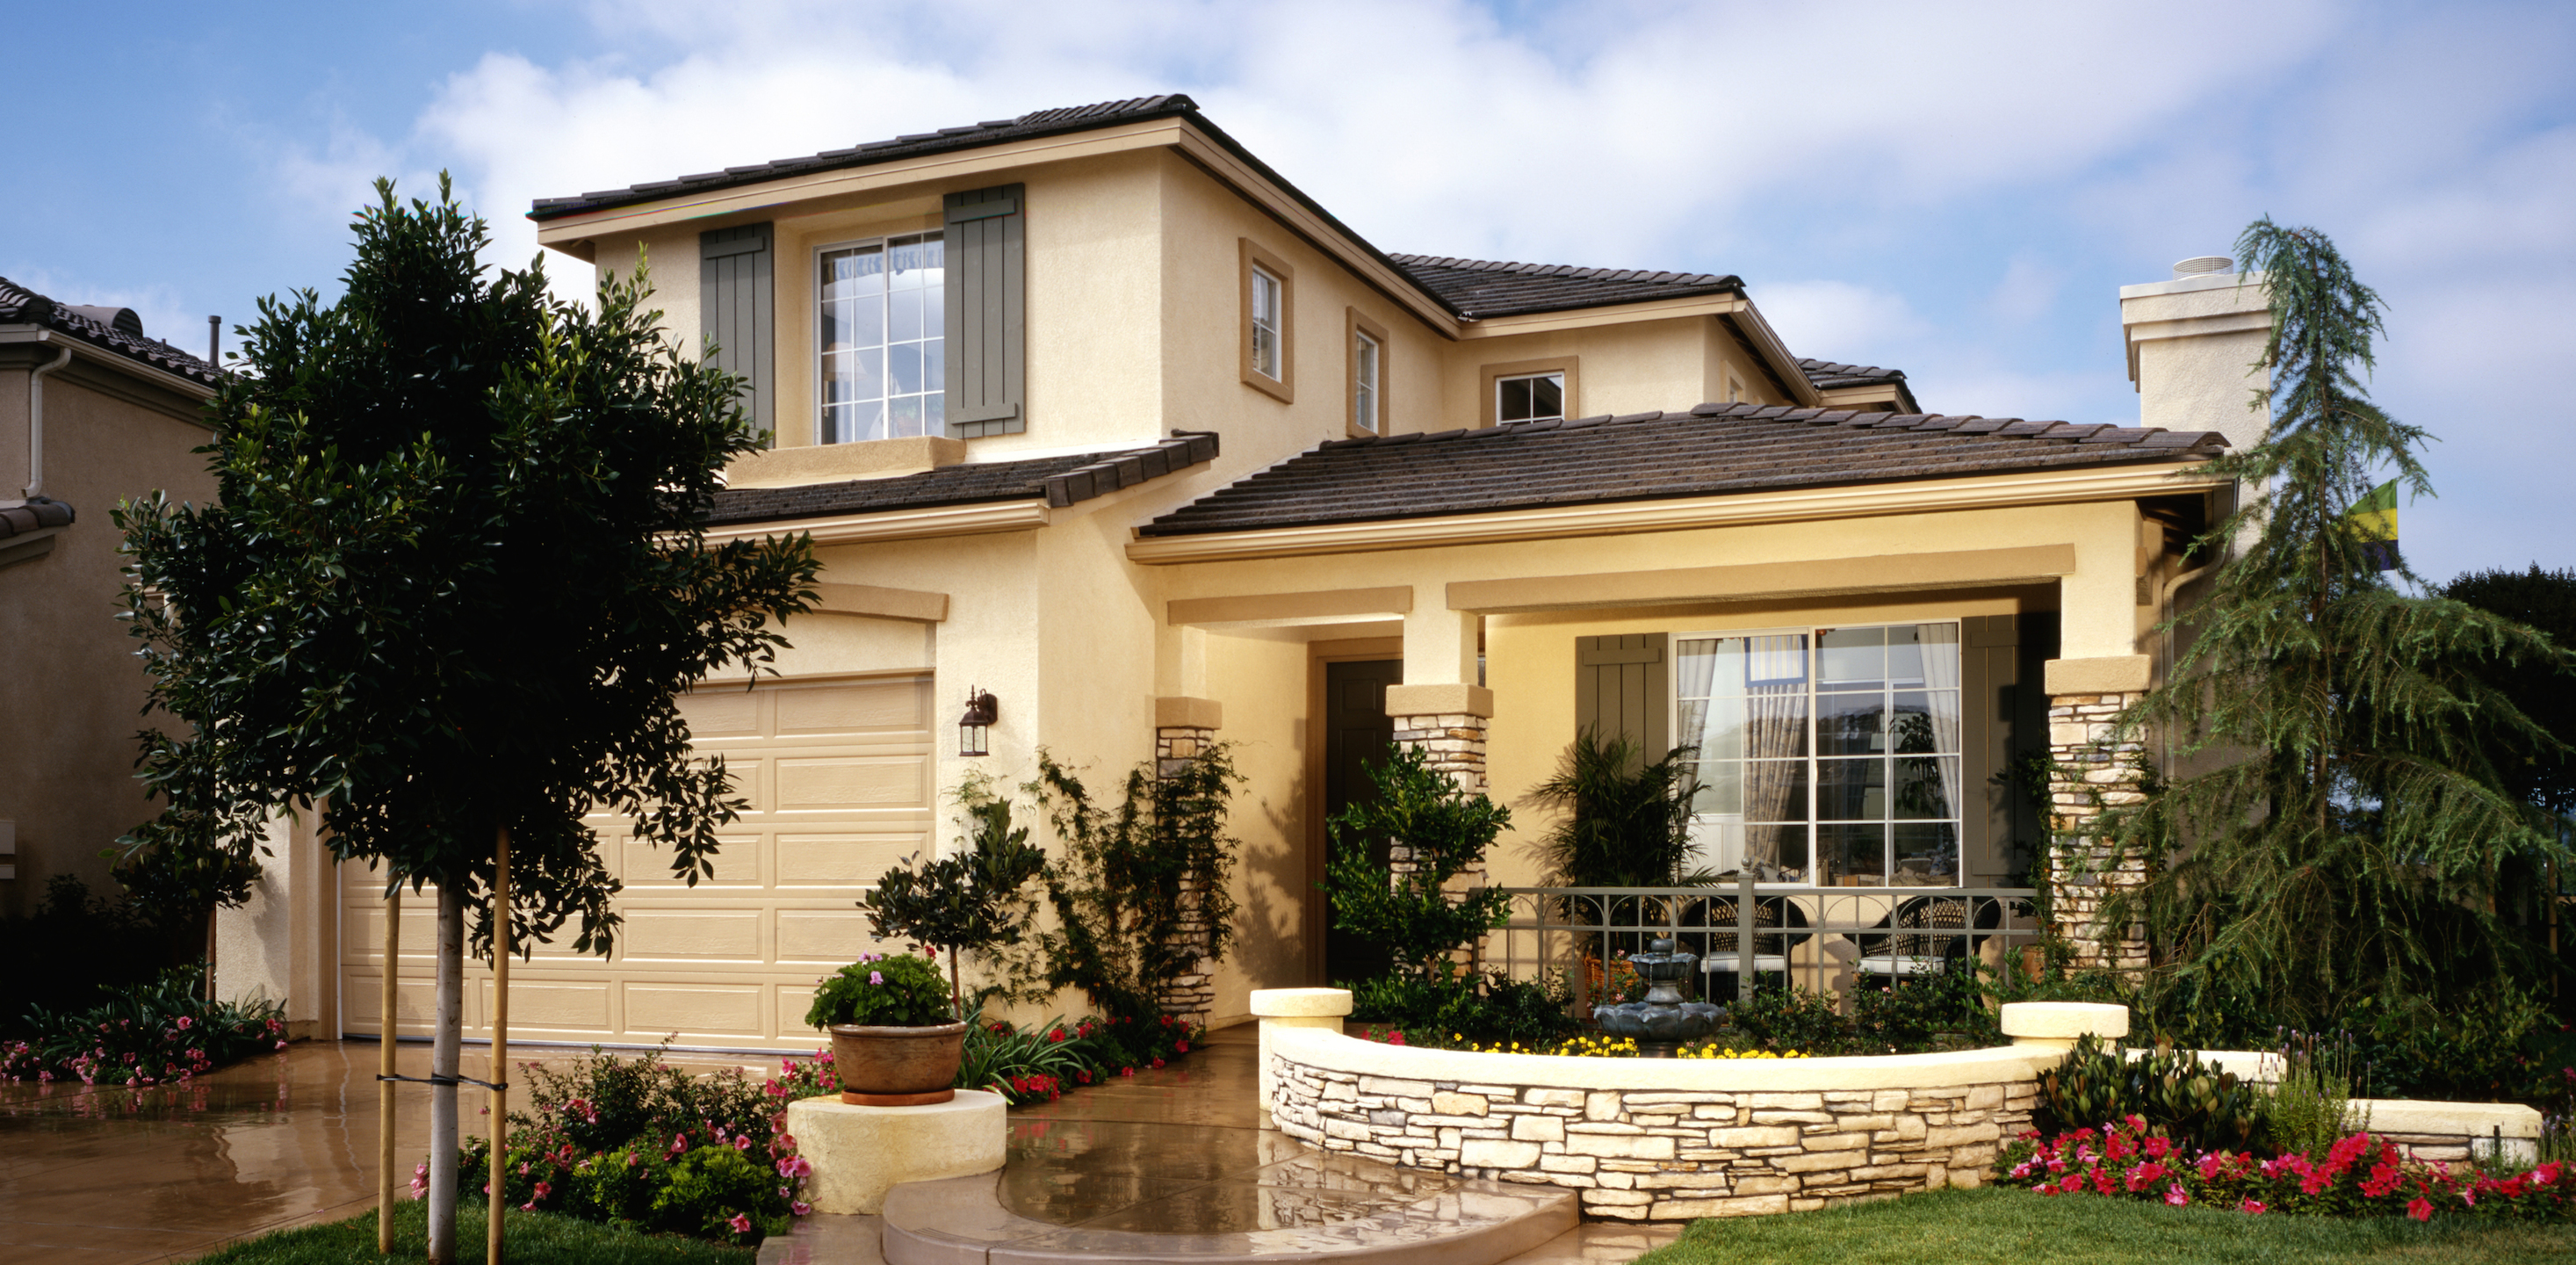 LANCASTER real estate - search all Lancaster homes & condos